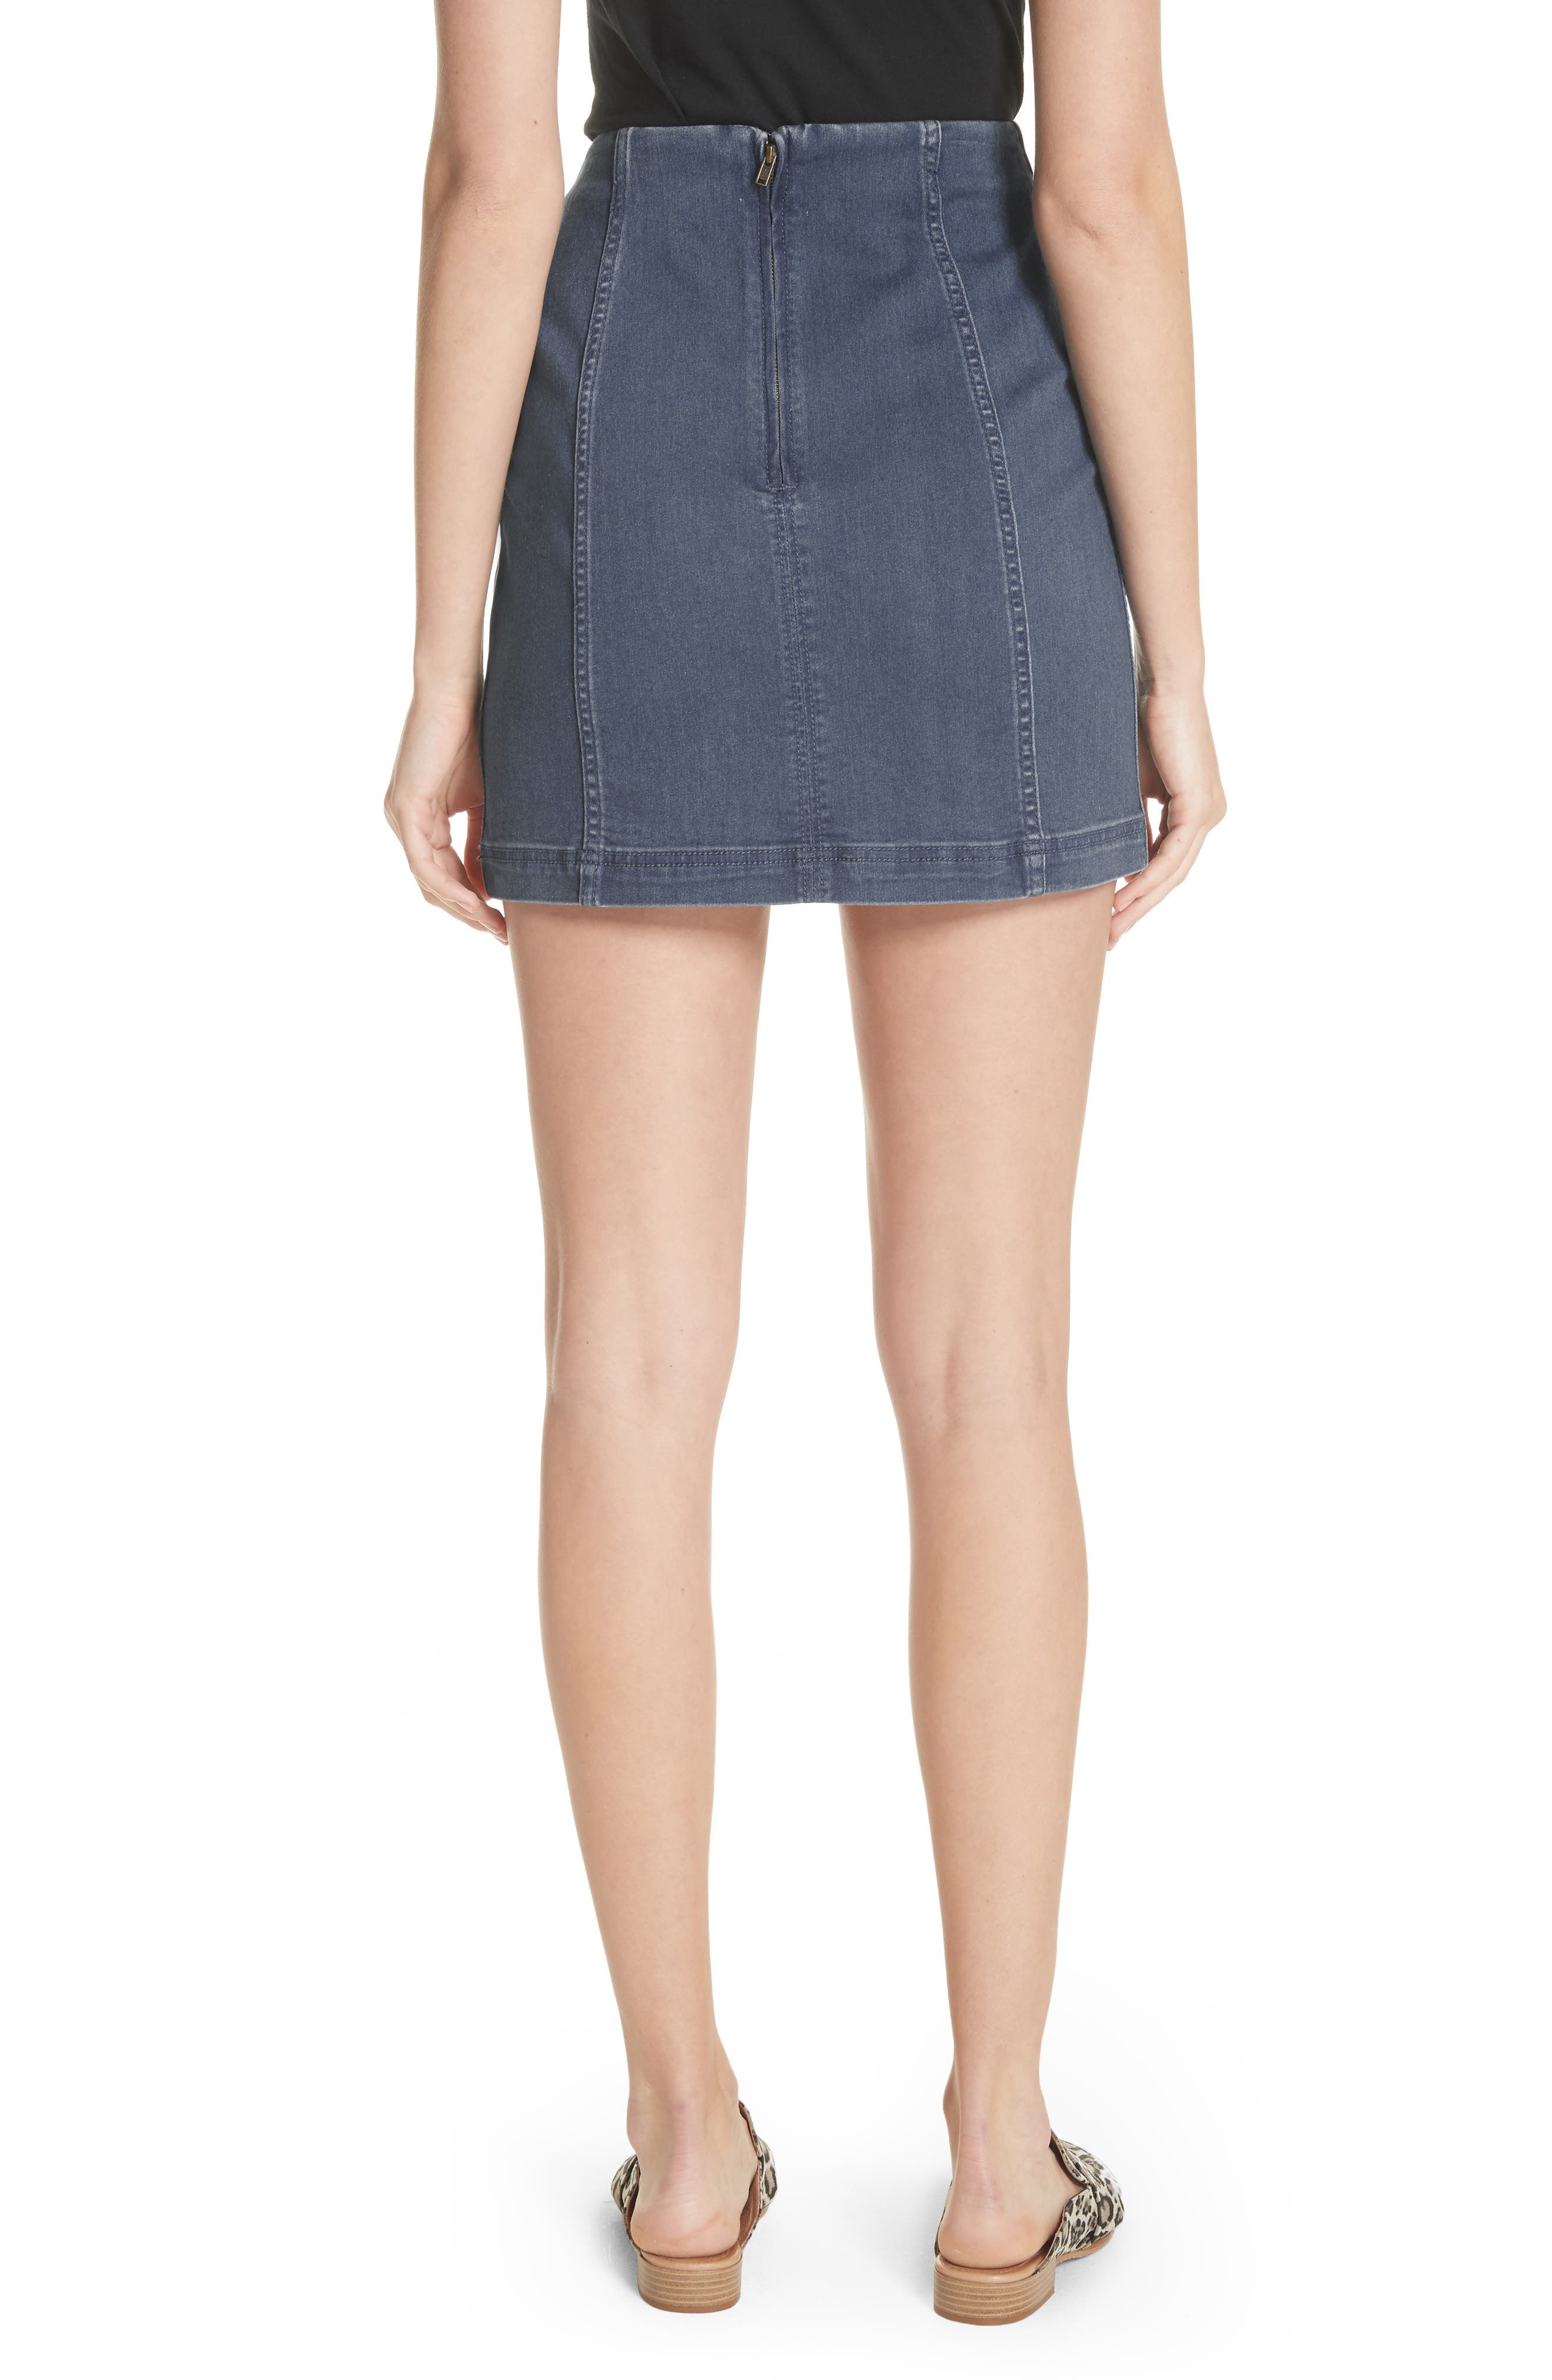 FREE PEOPLE, We the Free by Free People Modern Denim Miniskirt, Alternate thumbnail 2, color, 400